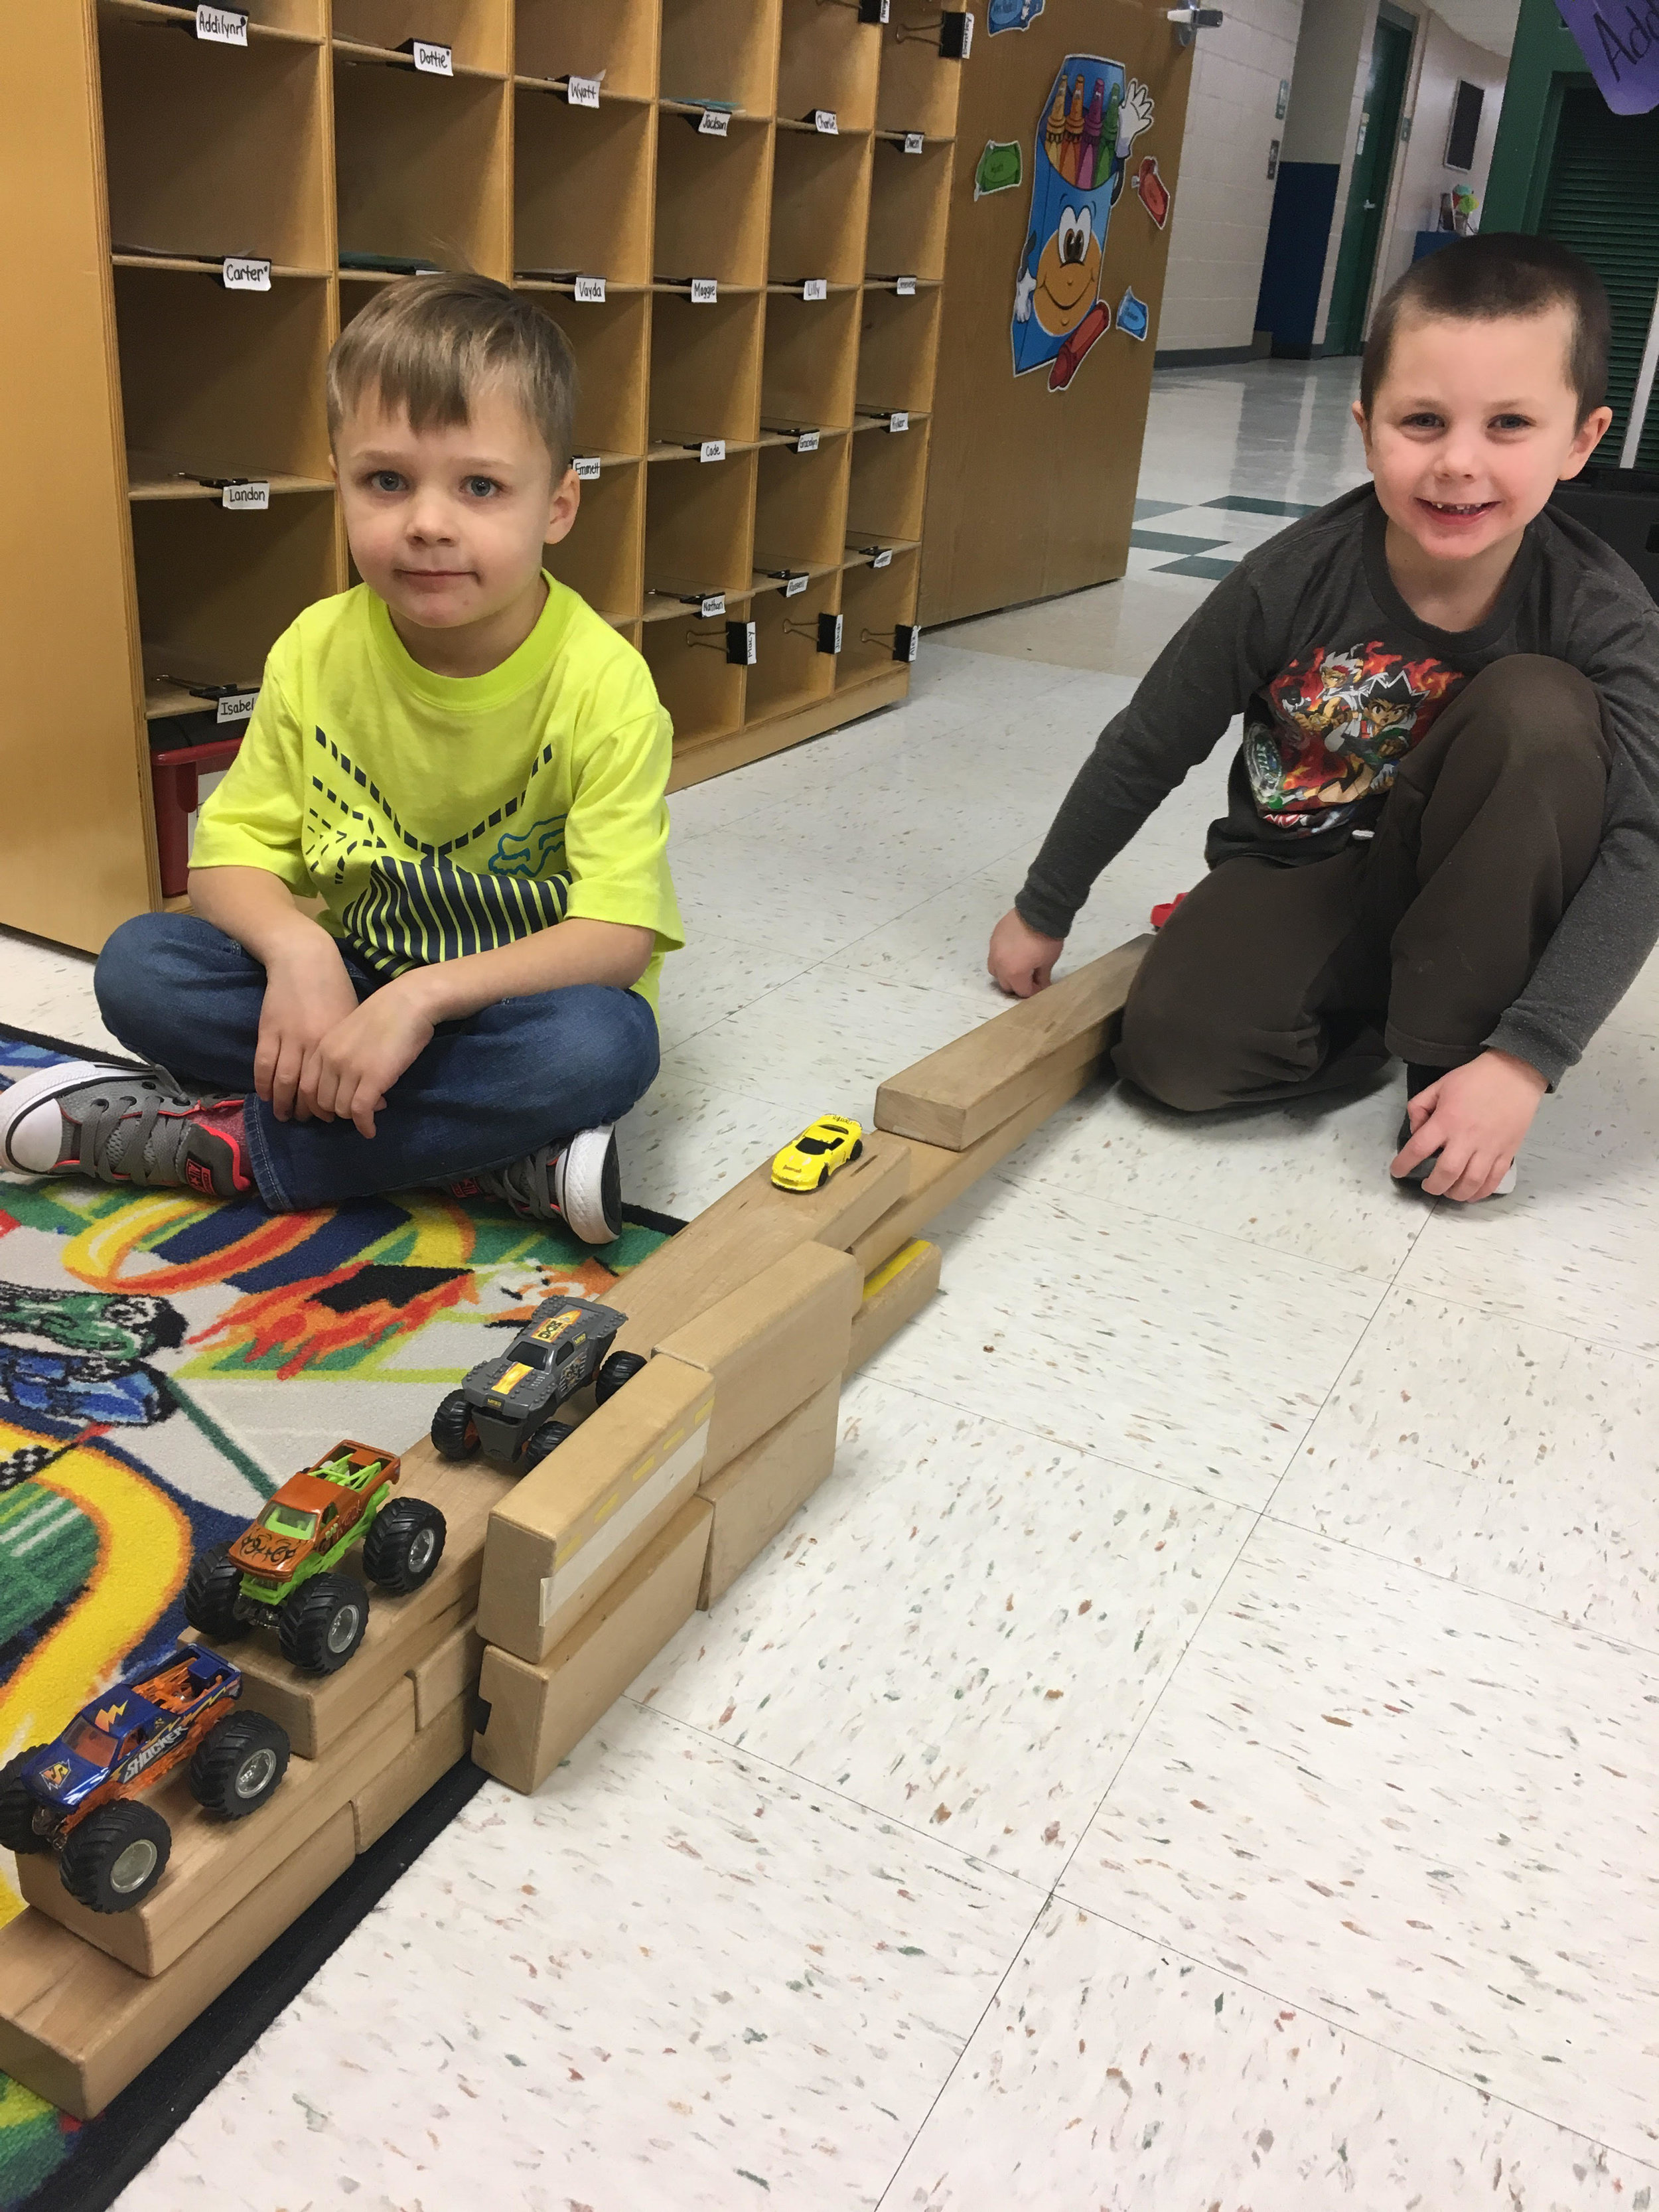 They made a boat carrying cars during play time